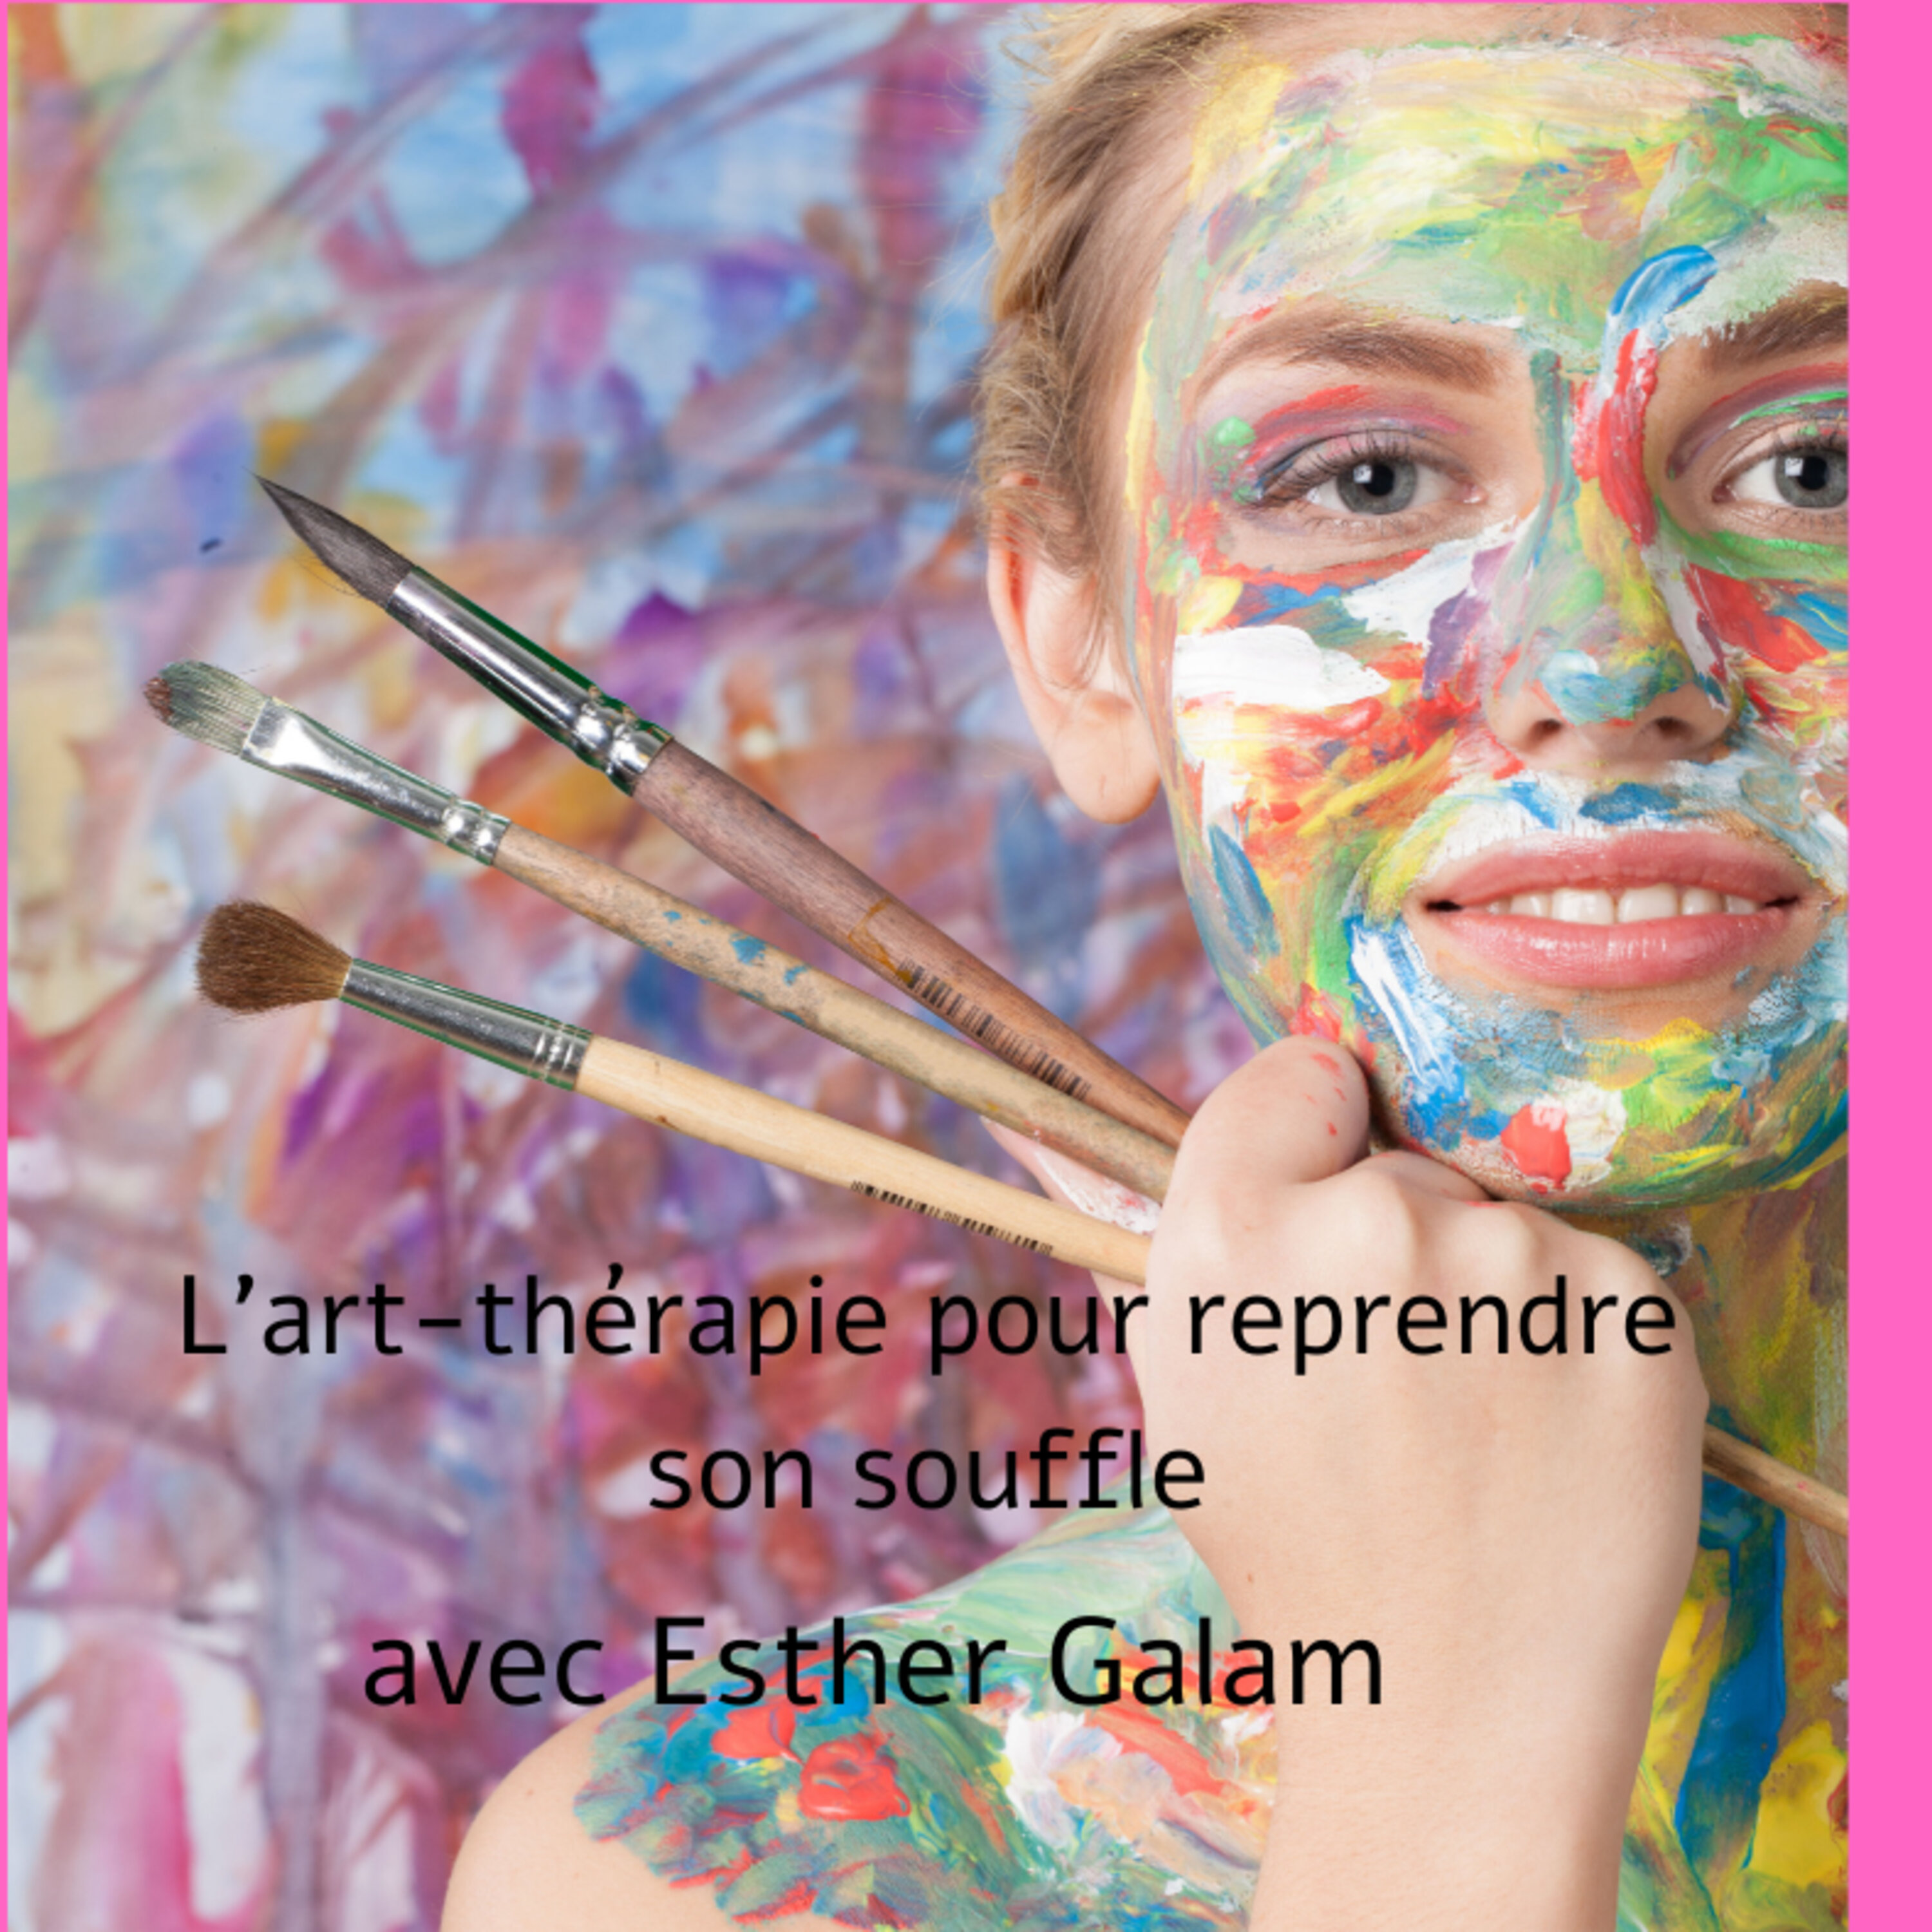 Esther Galam ''On reprend son souffle''